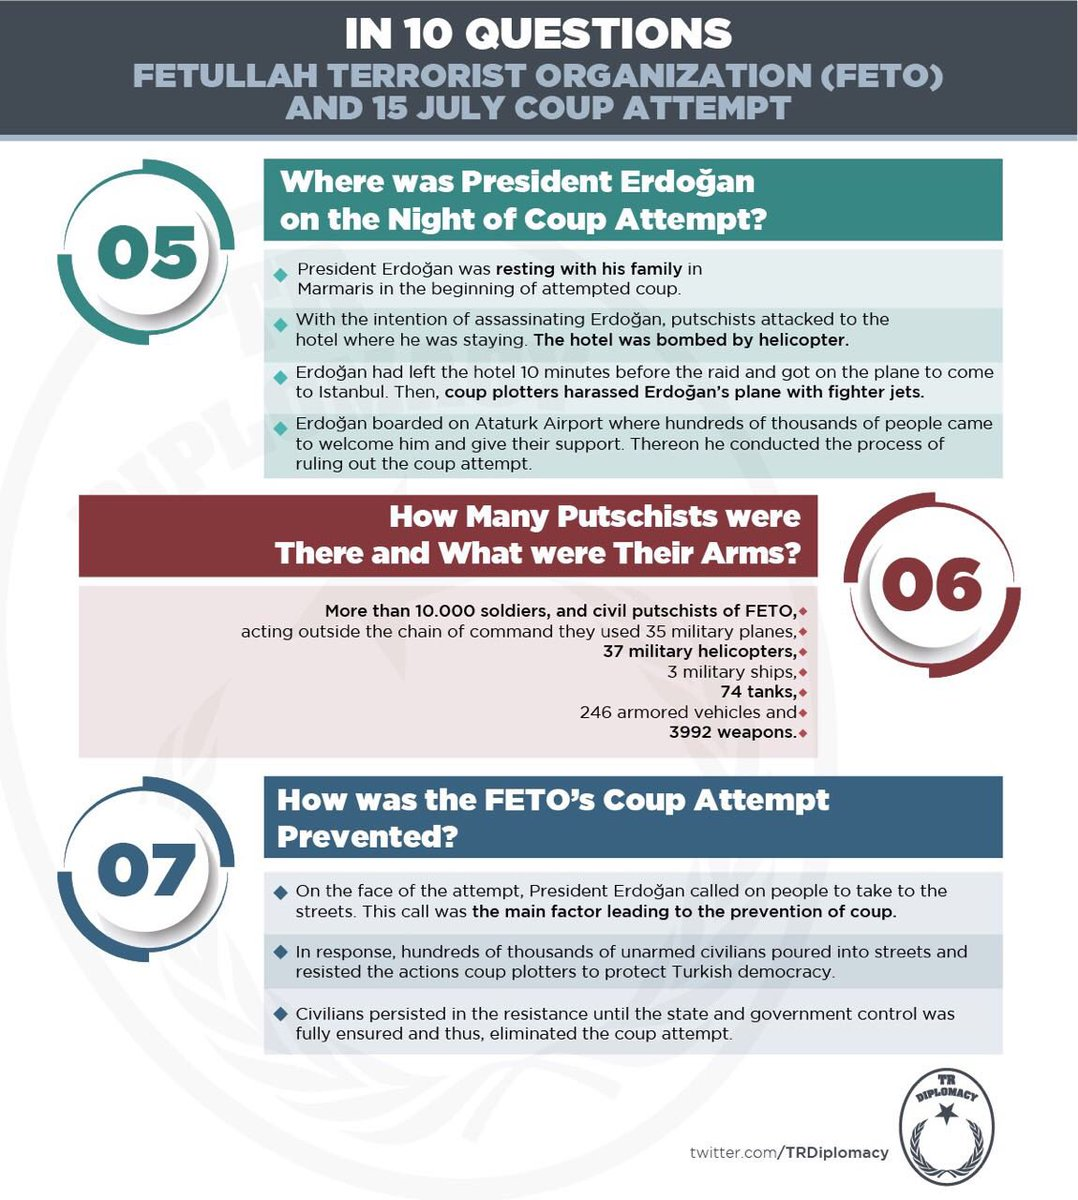 Fetullah Terrorist Organization (FETO) and July 15 Coup Attempt